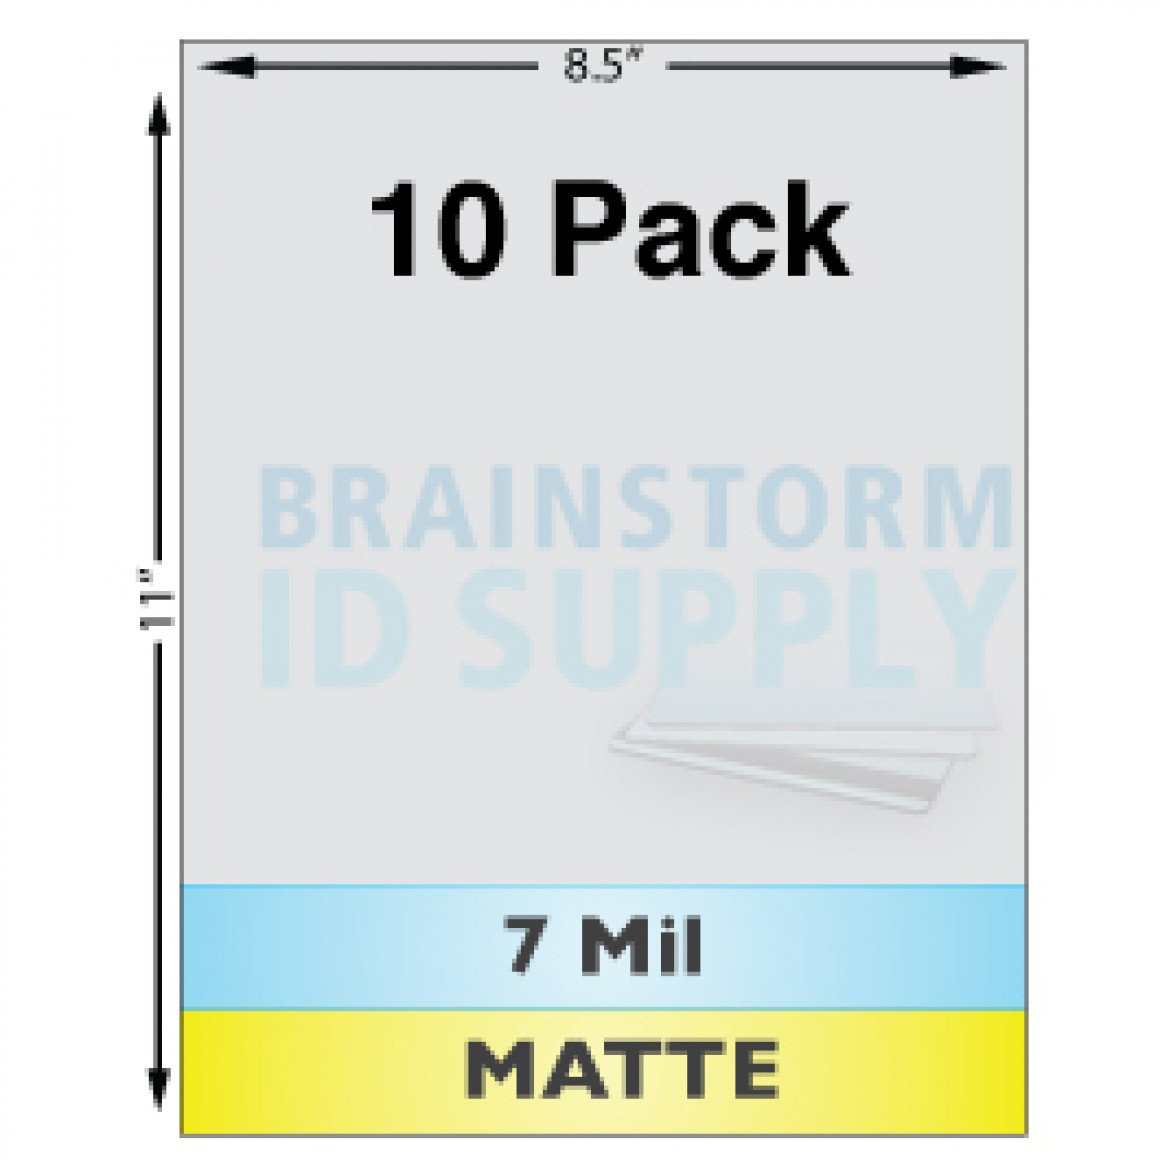 7 Mil Matte Full Sheet Laminates - 10 Pack